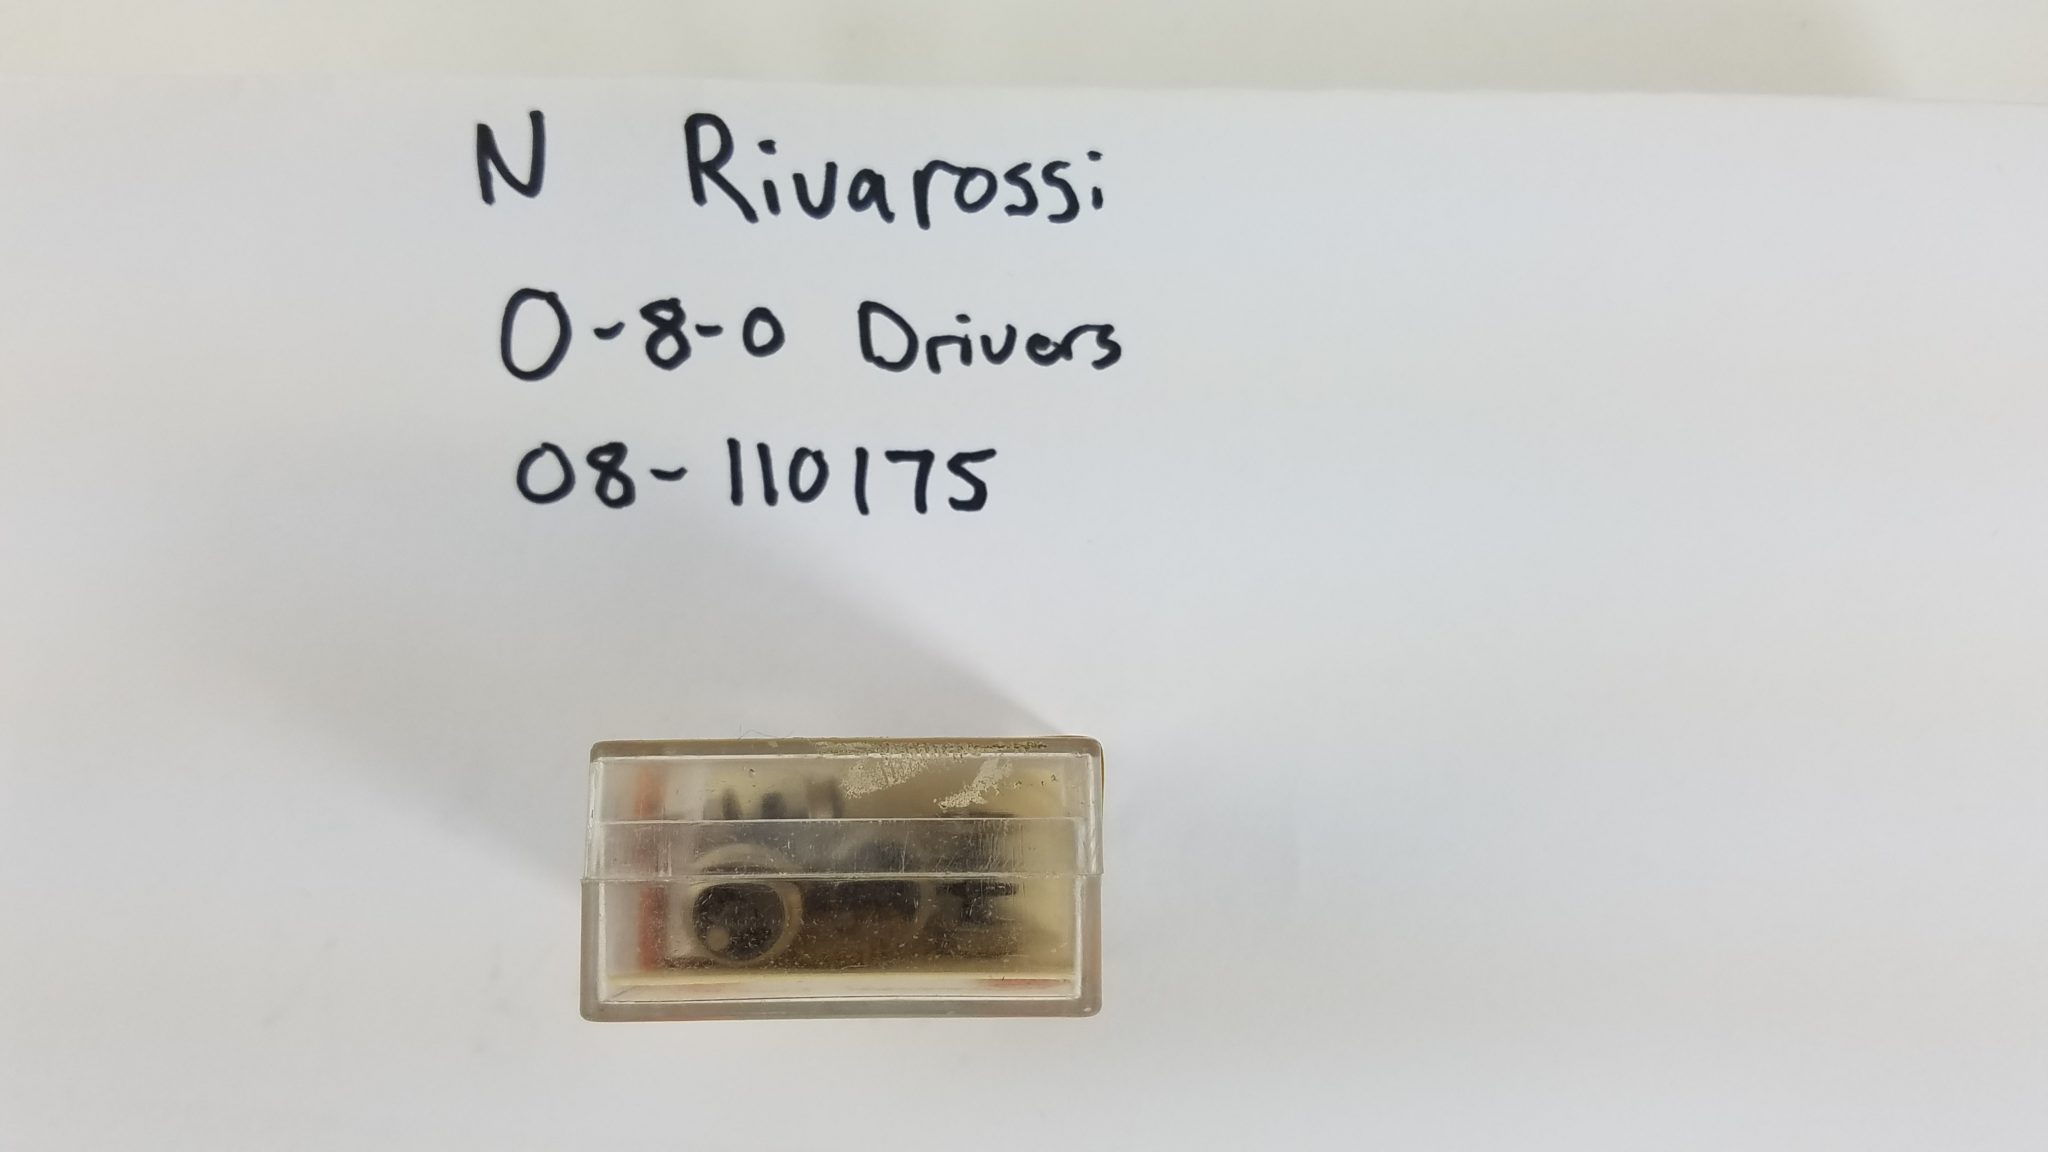 N Rivarossi 0-8-0 Drivers (Wheels, 3 Gears, 6 metal washers, 3 plastic clips)